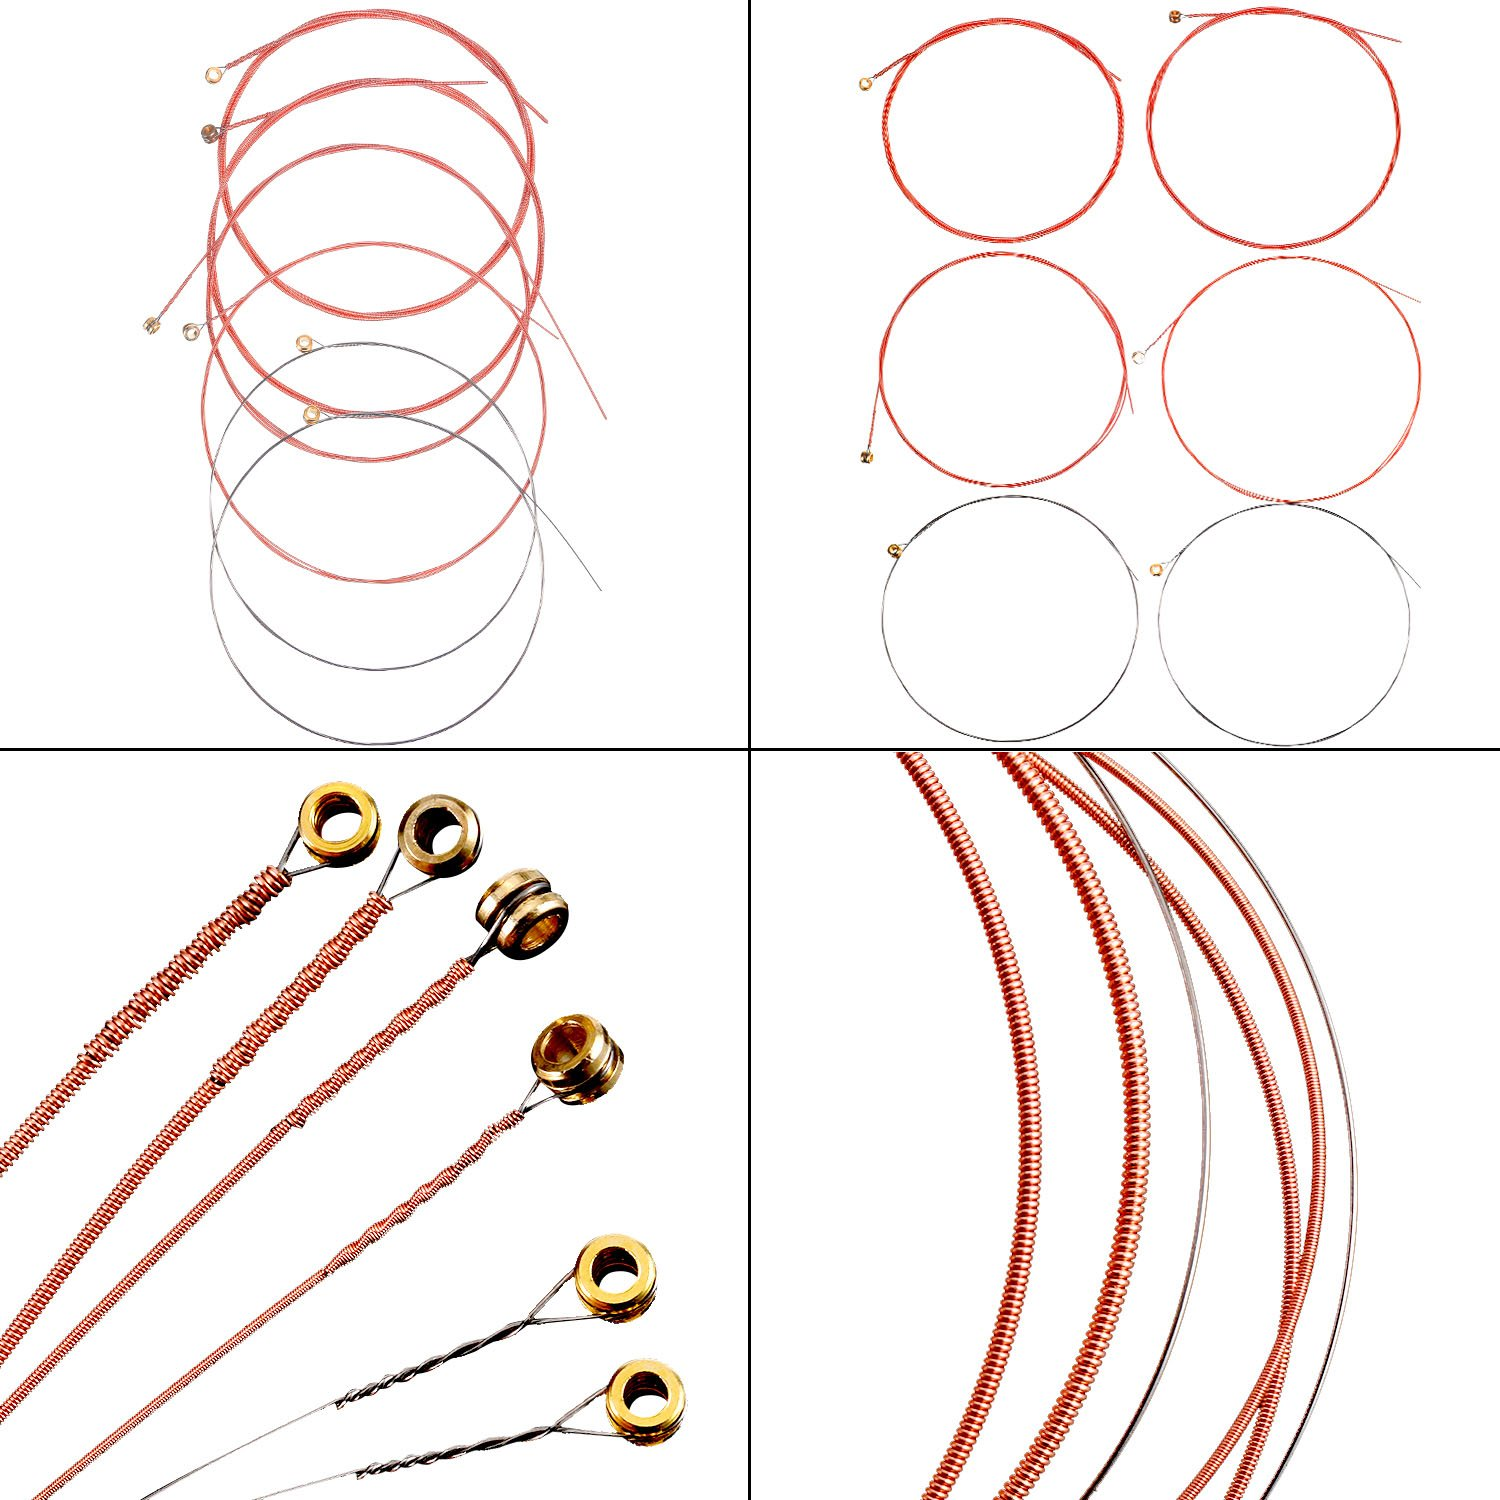 Bememo 3 Sets of 6 Guitar Strings Replacement Steel String for Acoustic Guitar 1 Brass Set, 1 Copper Set and 1 Multicolor Set